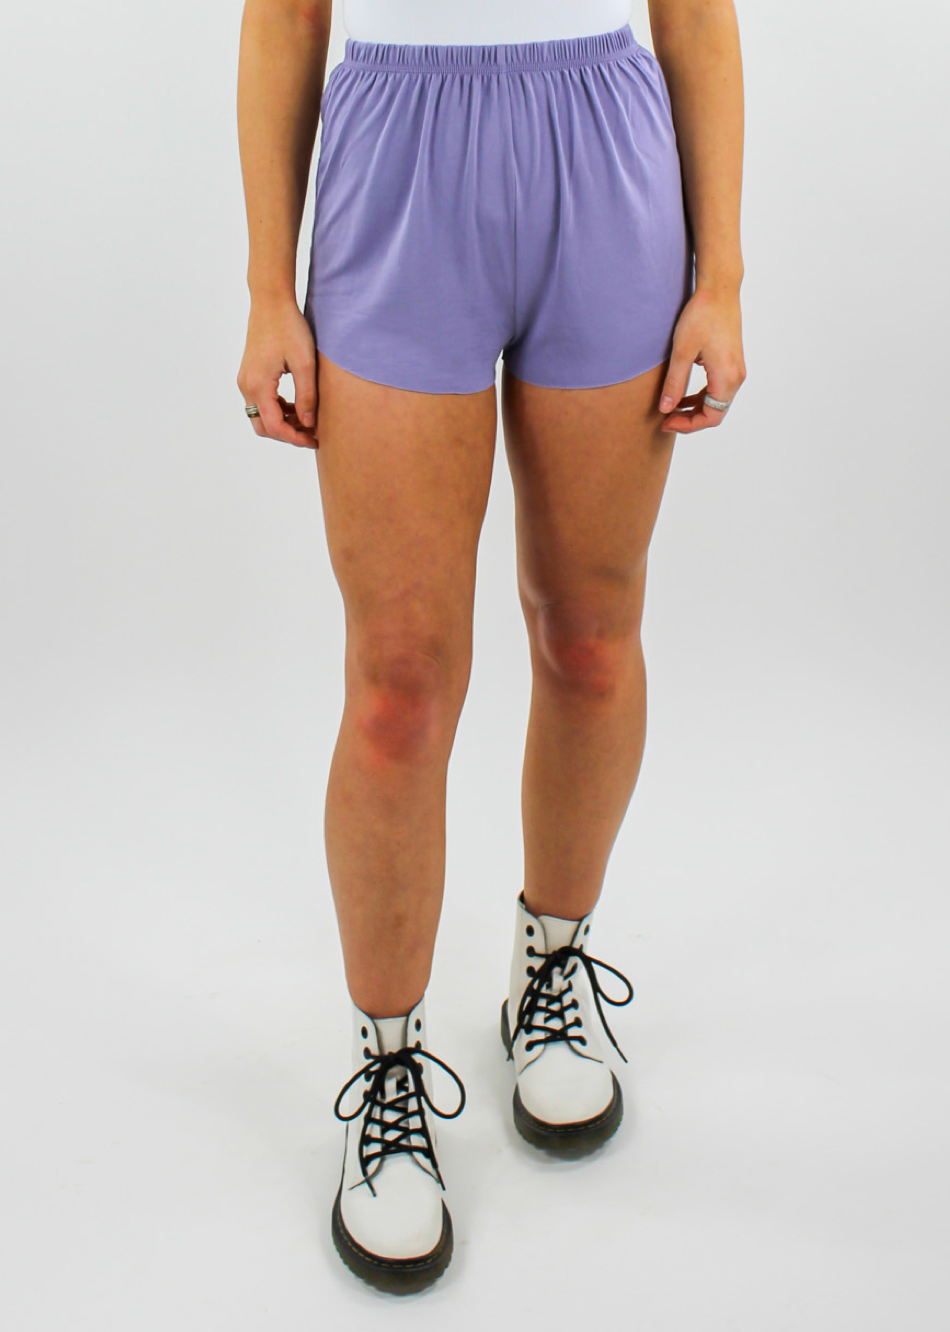 Humble Shorts ★ Lavender - Rock N Rags